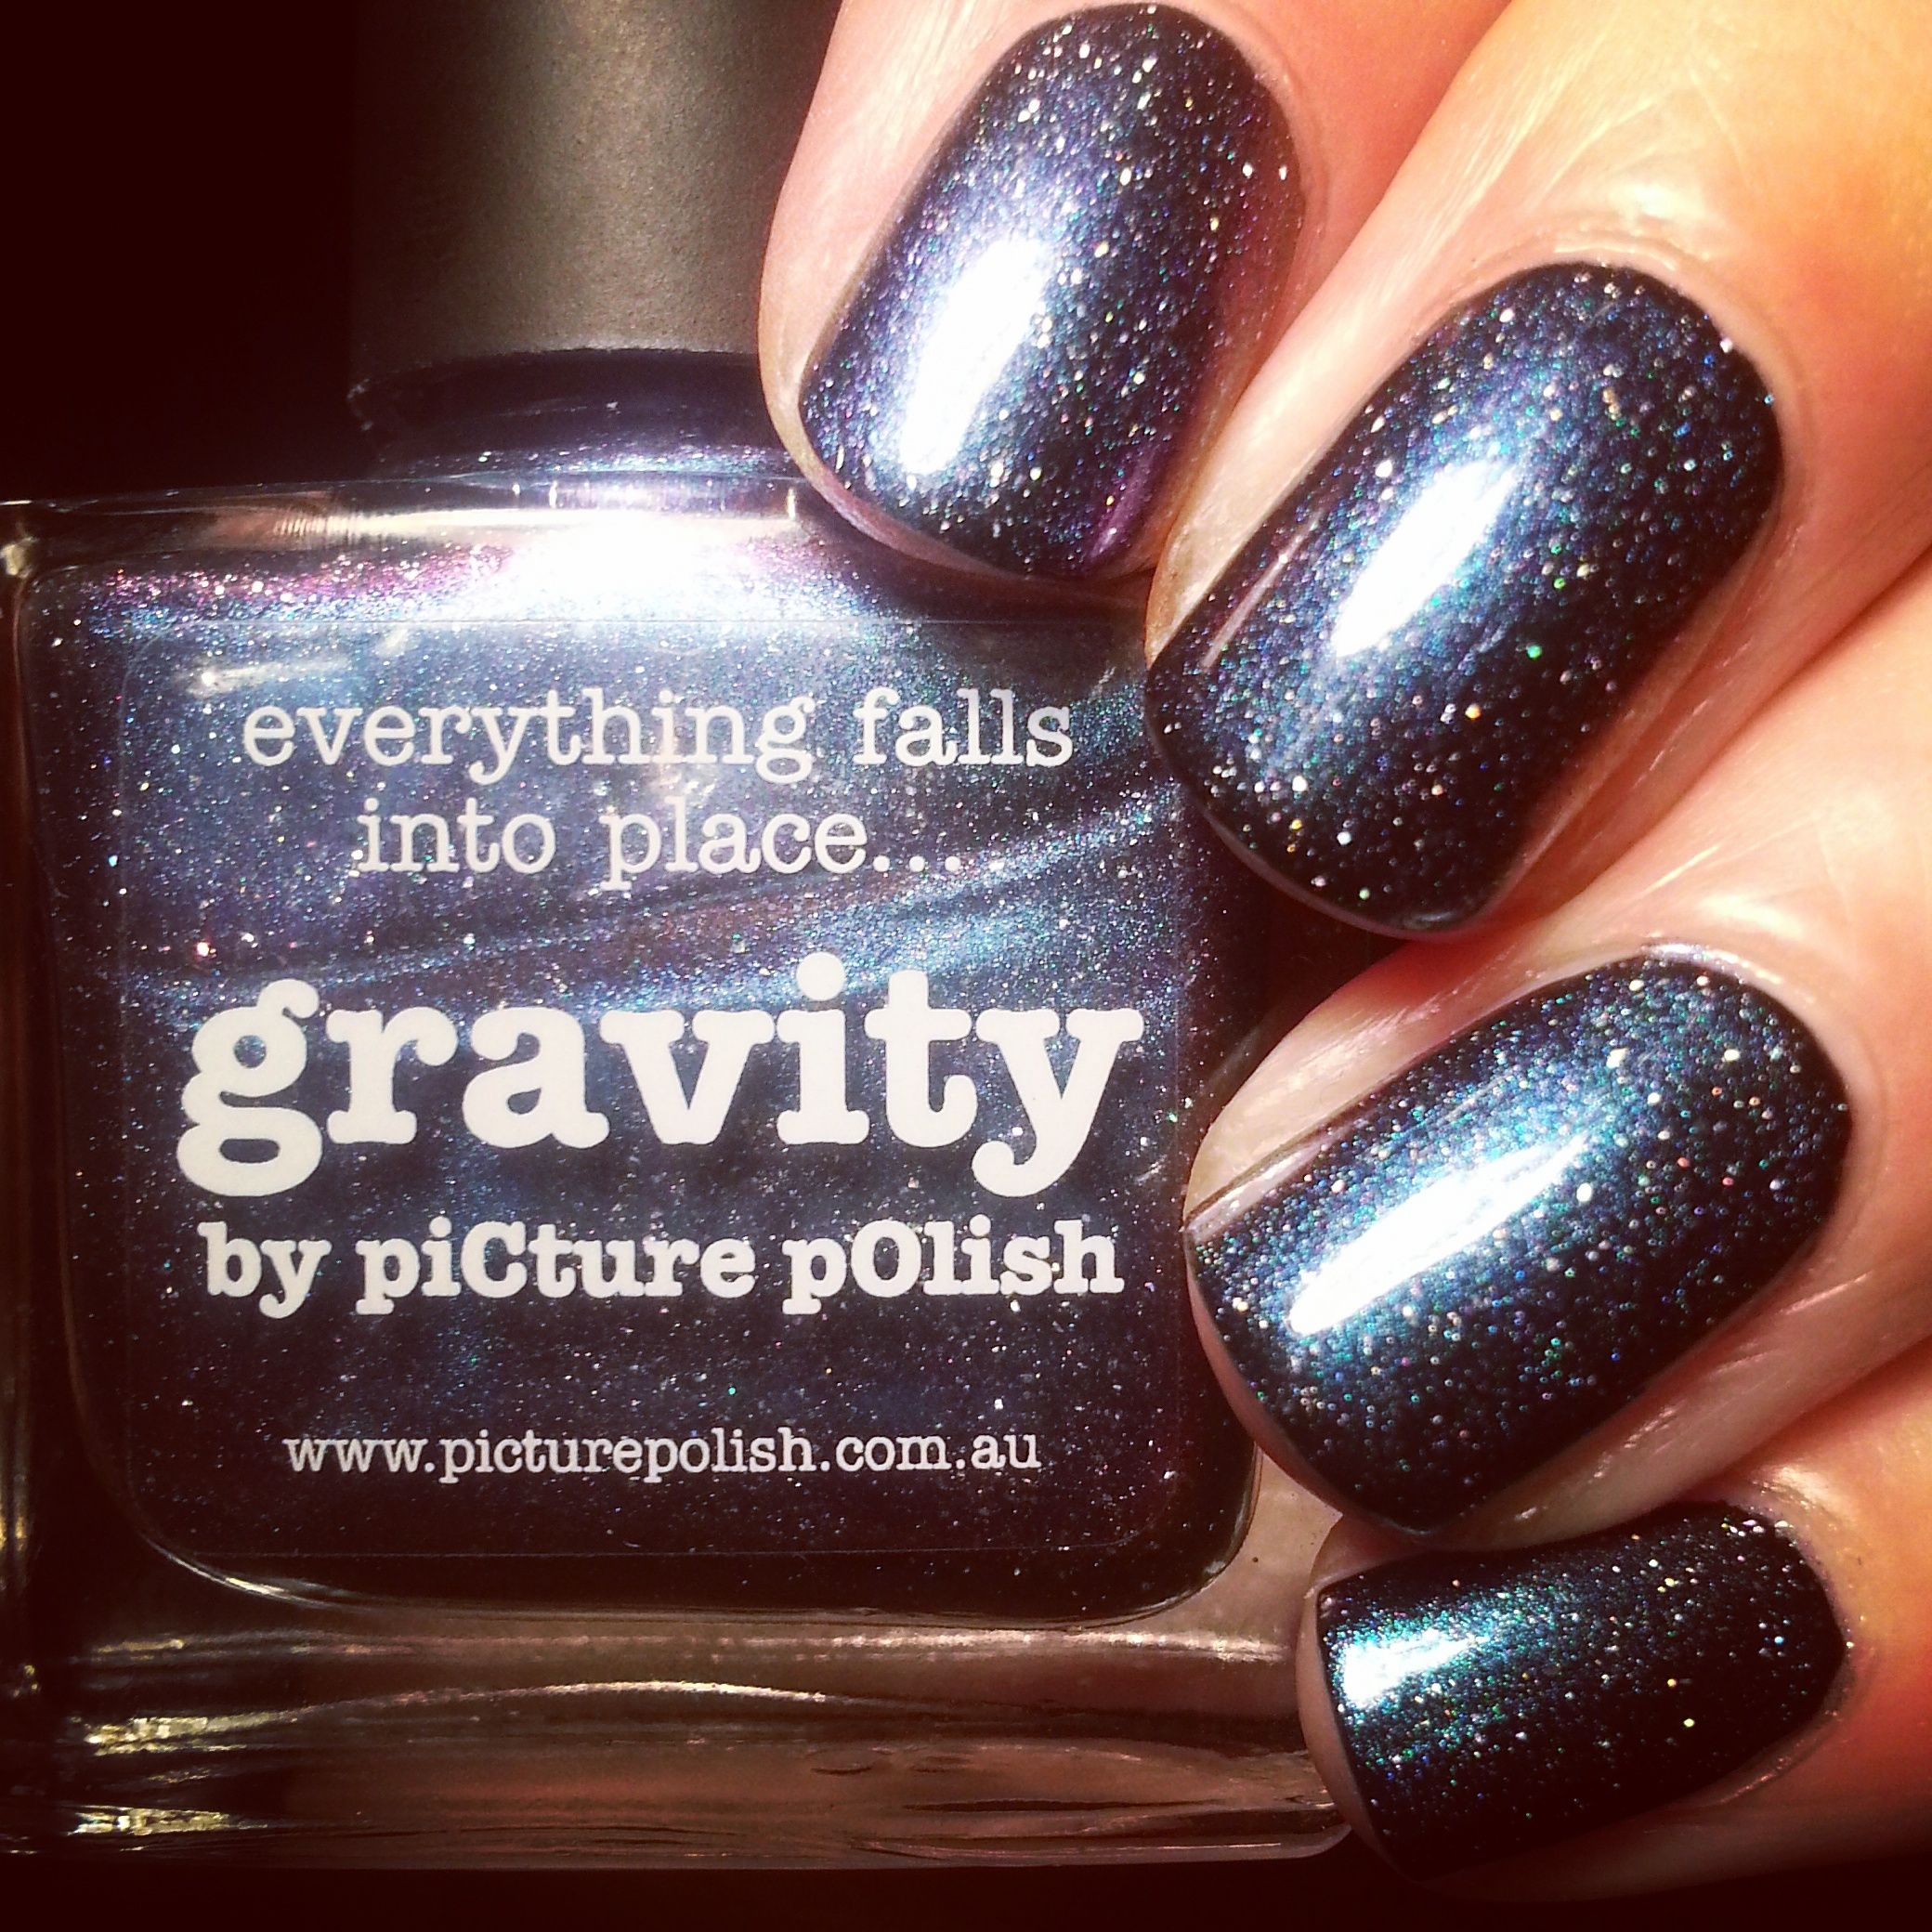 piCture pOlish - Gravity over Nails Inc New York Noir  www.nailtheday.blogspot.co.uk